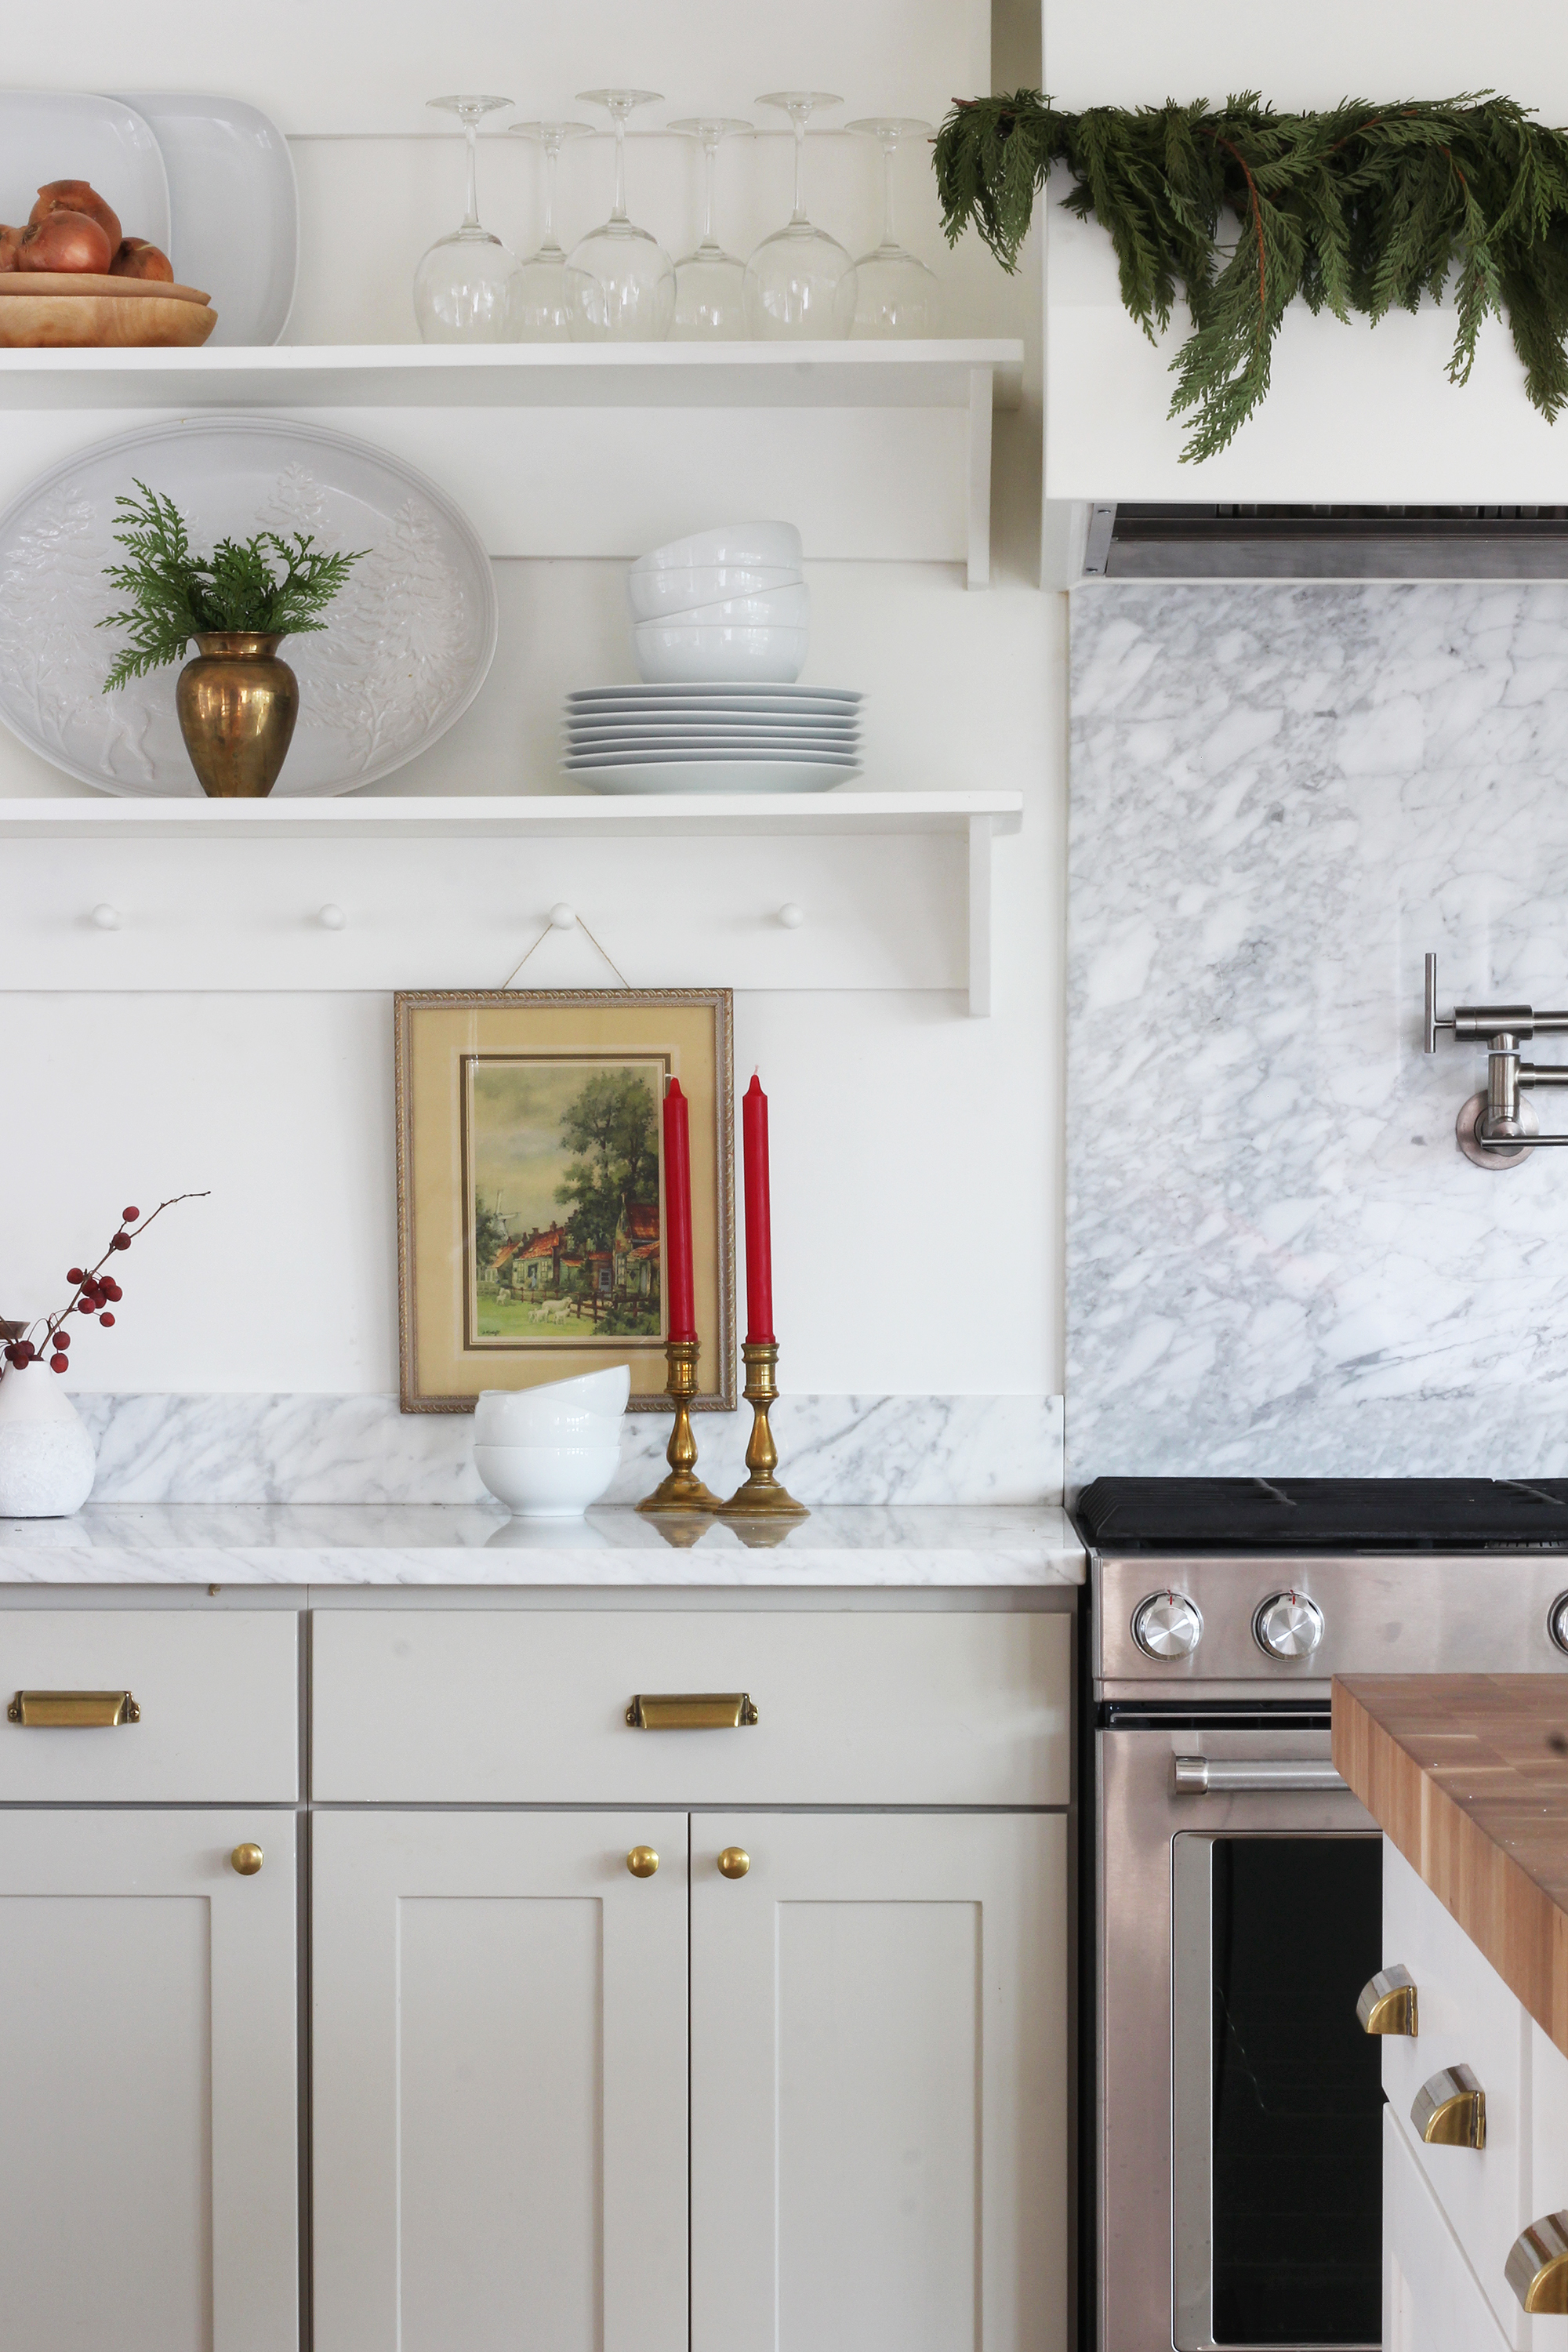 The Grit and Polish - Porch Kitchen Shelves and Hood Xmas 1.jpg